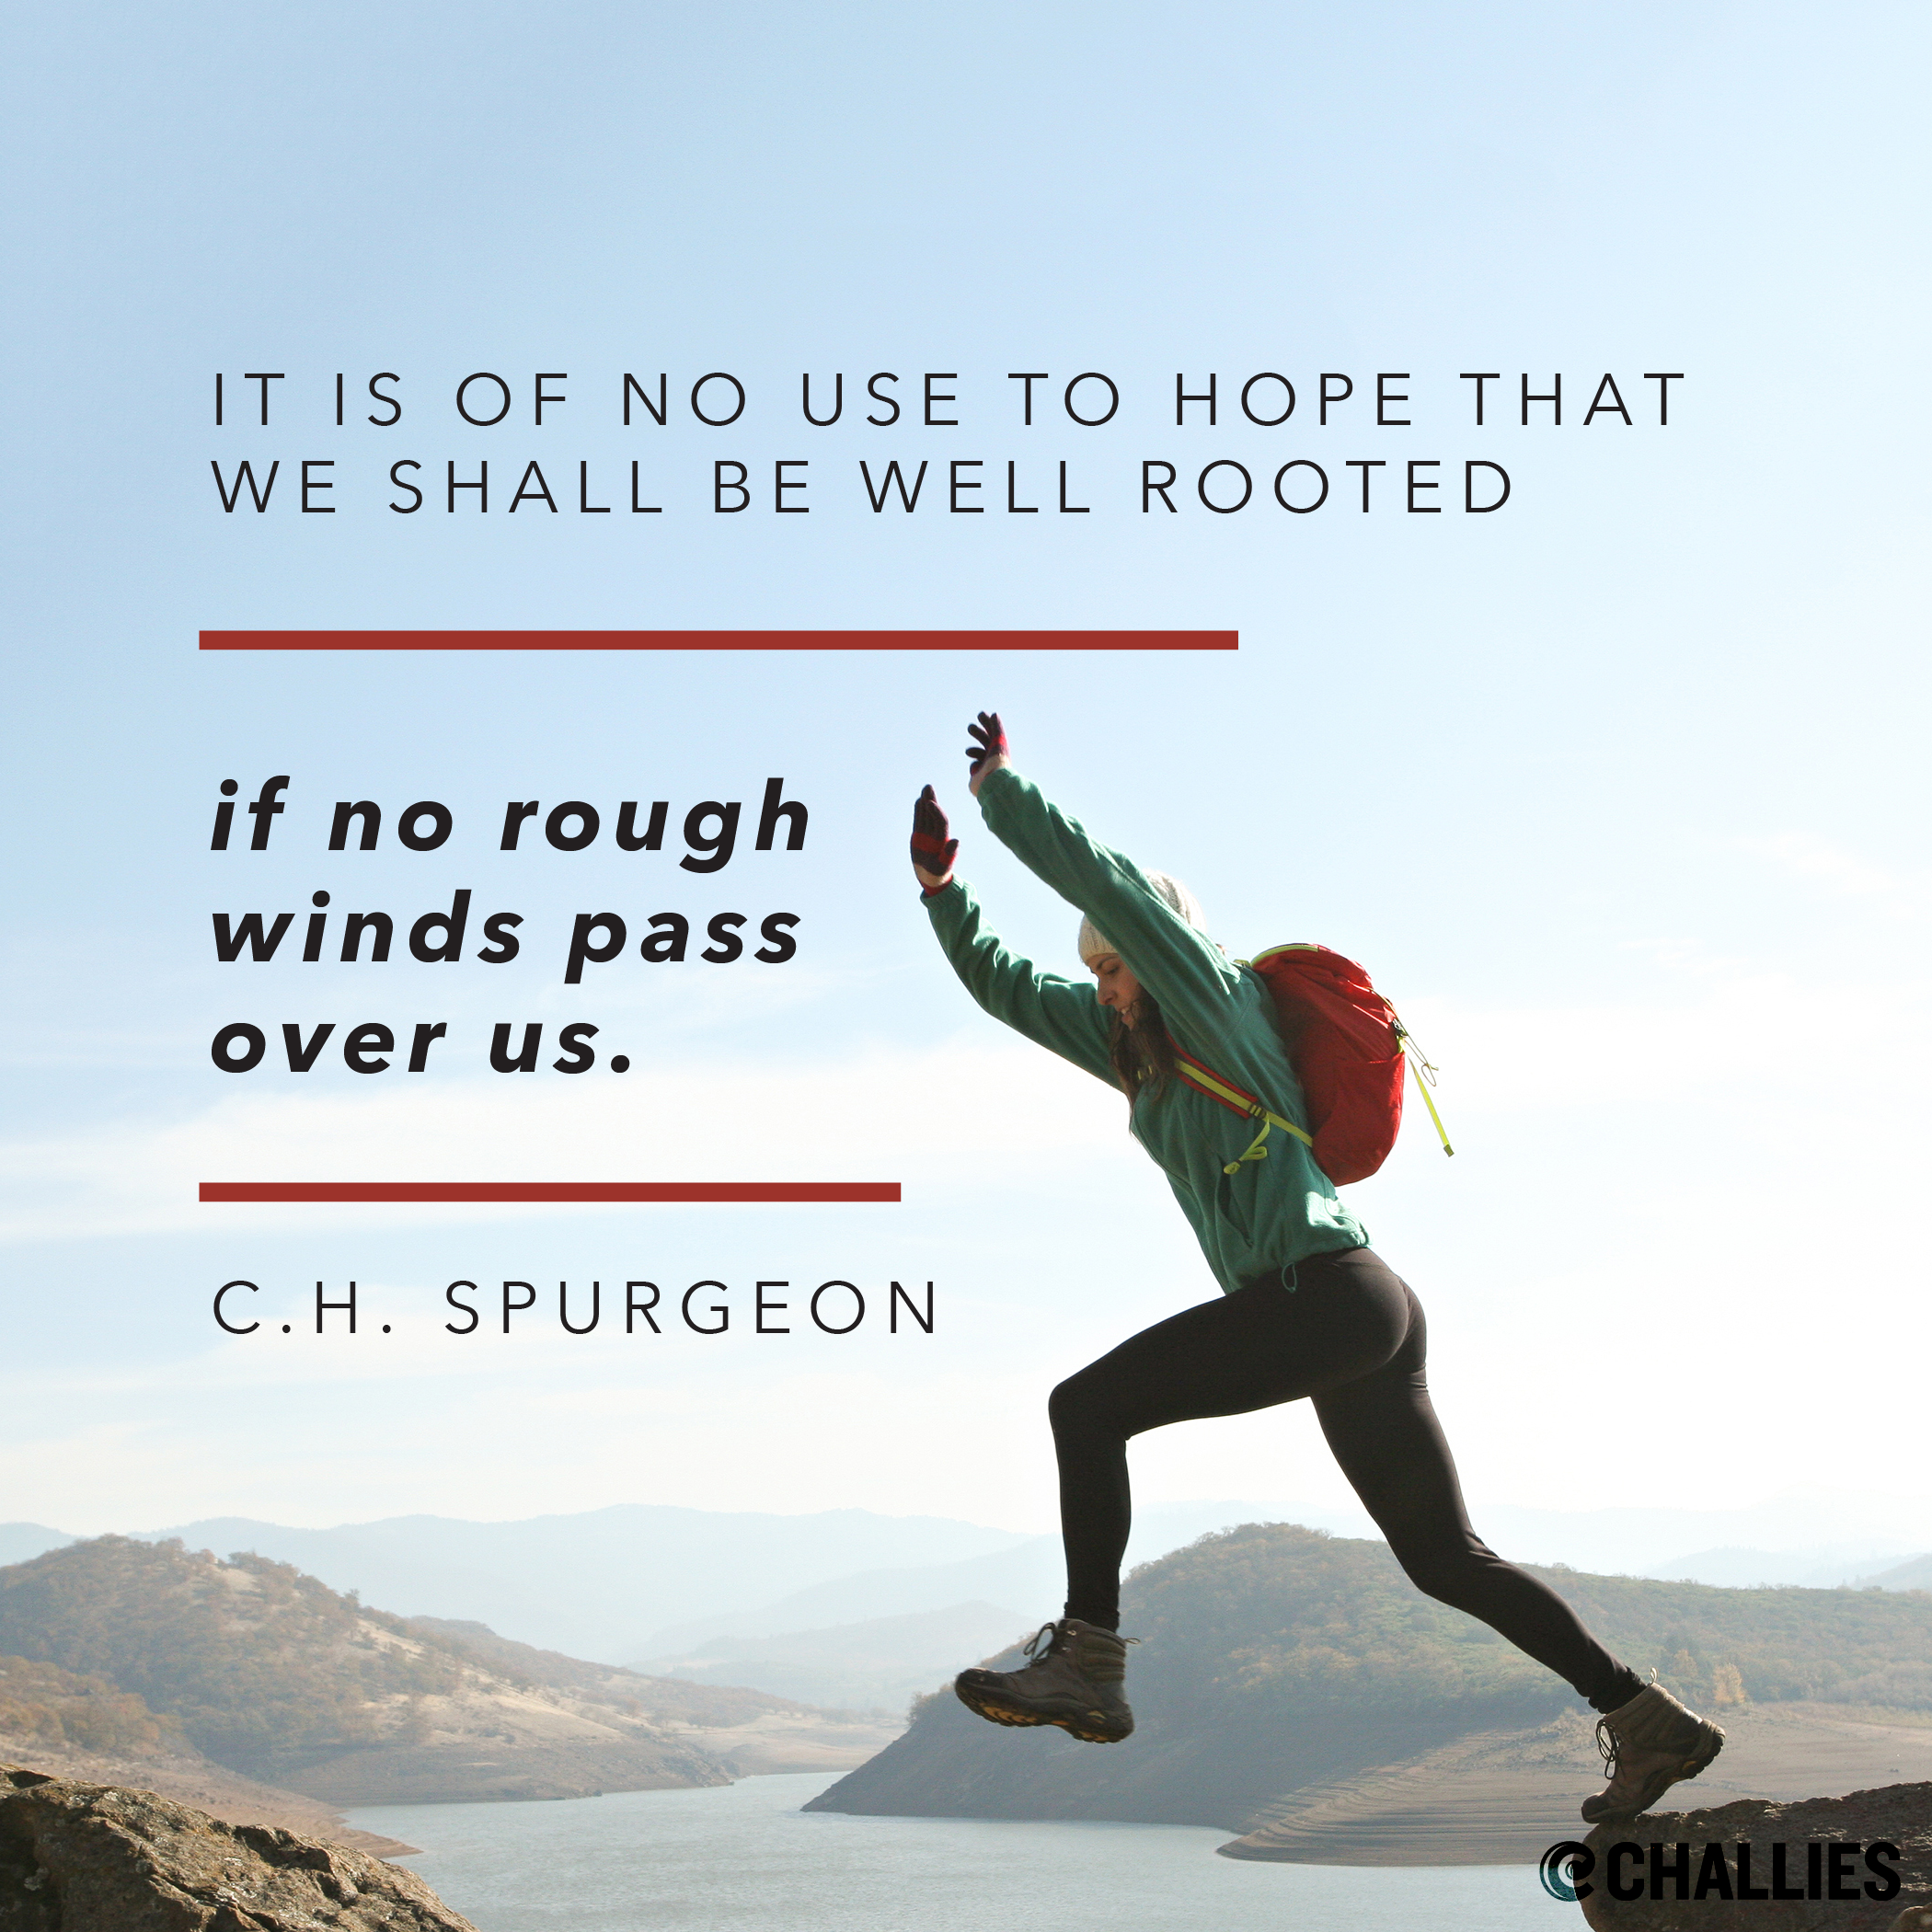 spurgeon idézetek It is of no use to hope that we shall be well rooted if no rough